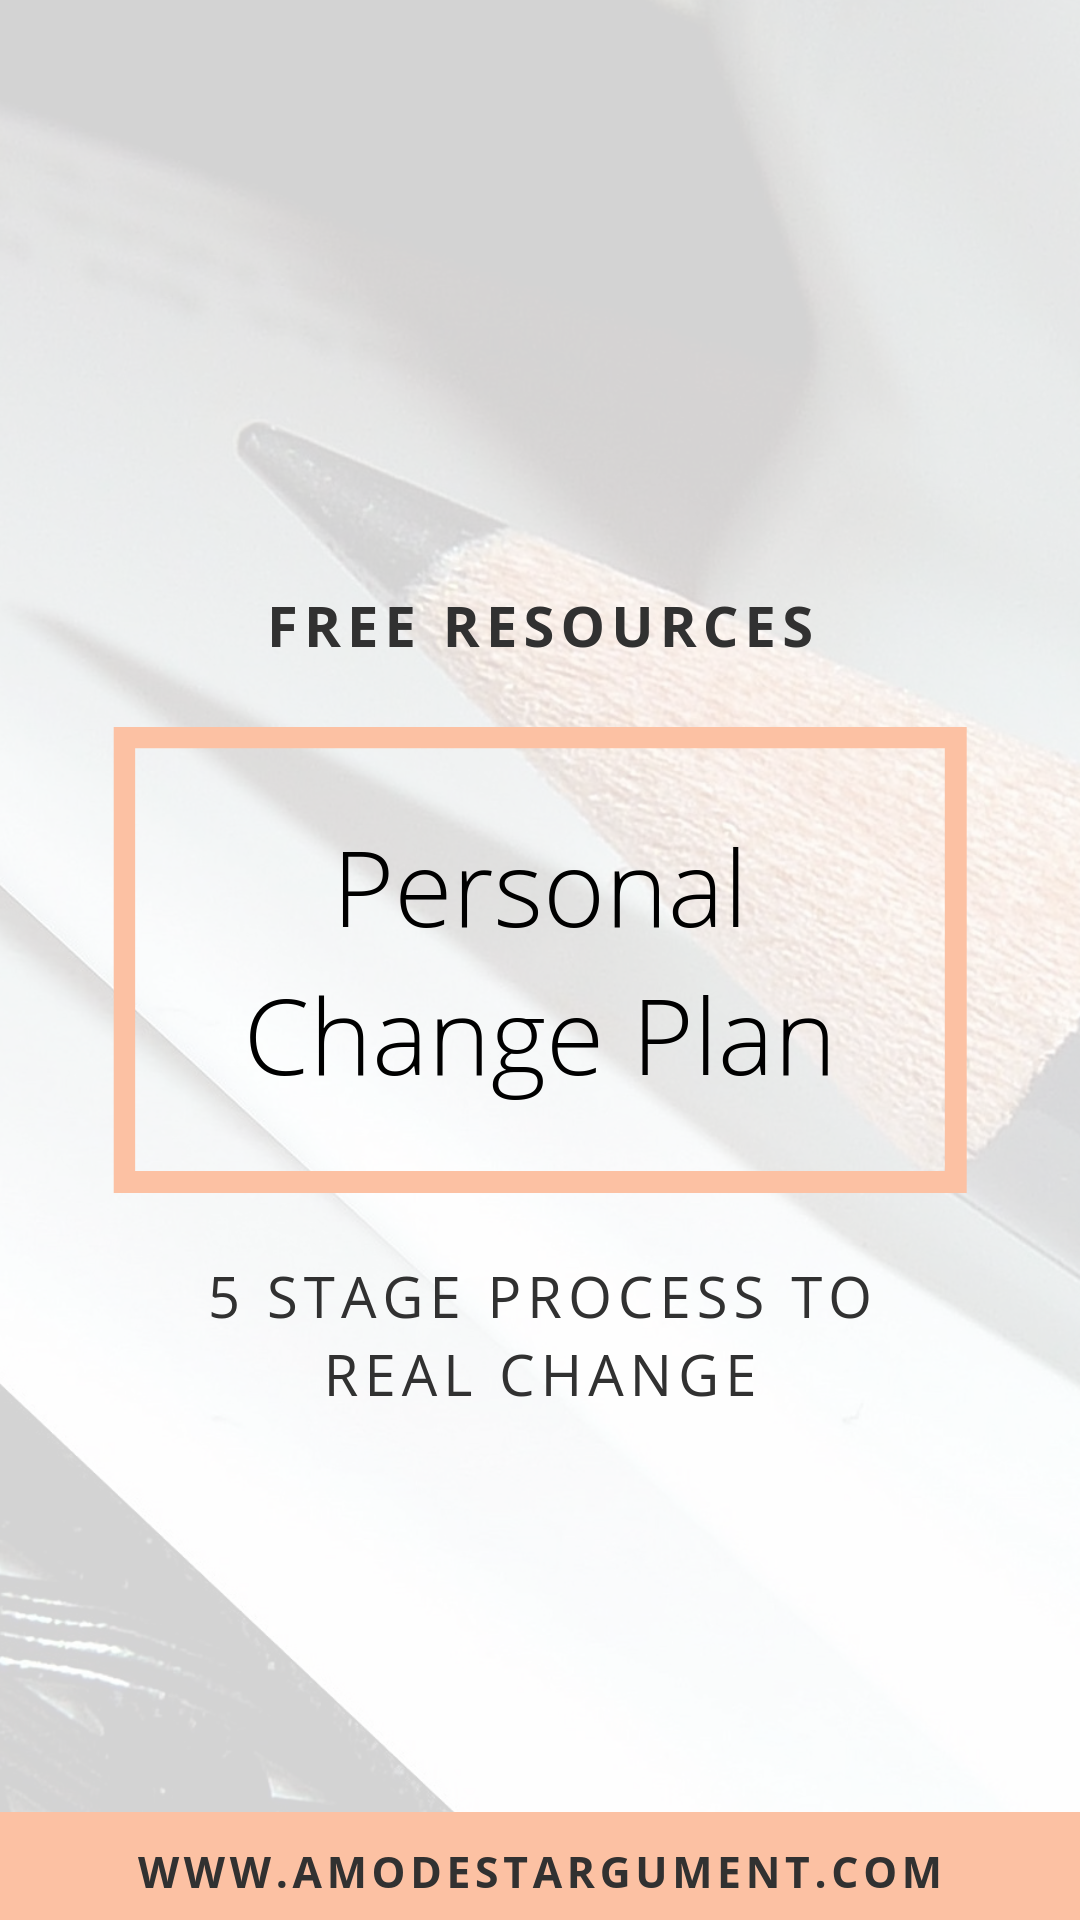 Get Your Free Personal Change Plan With A 5 Step Process